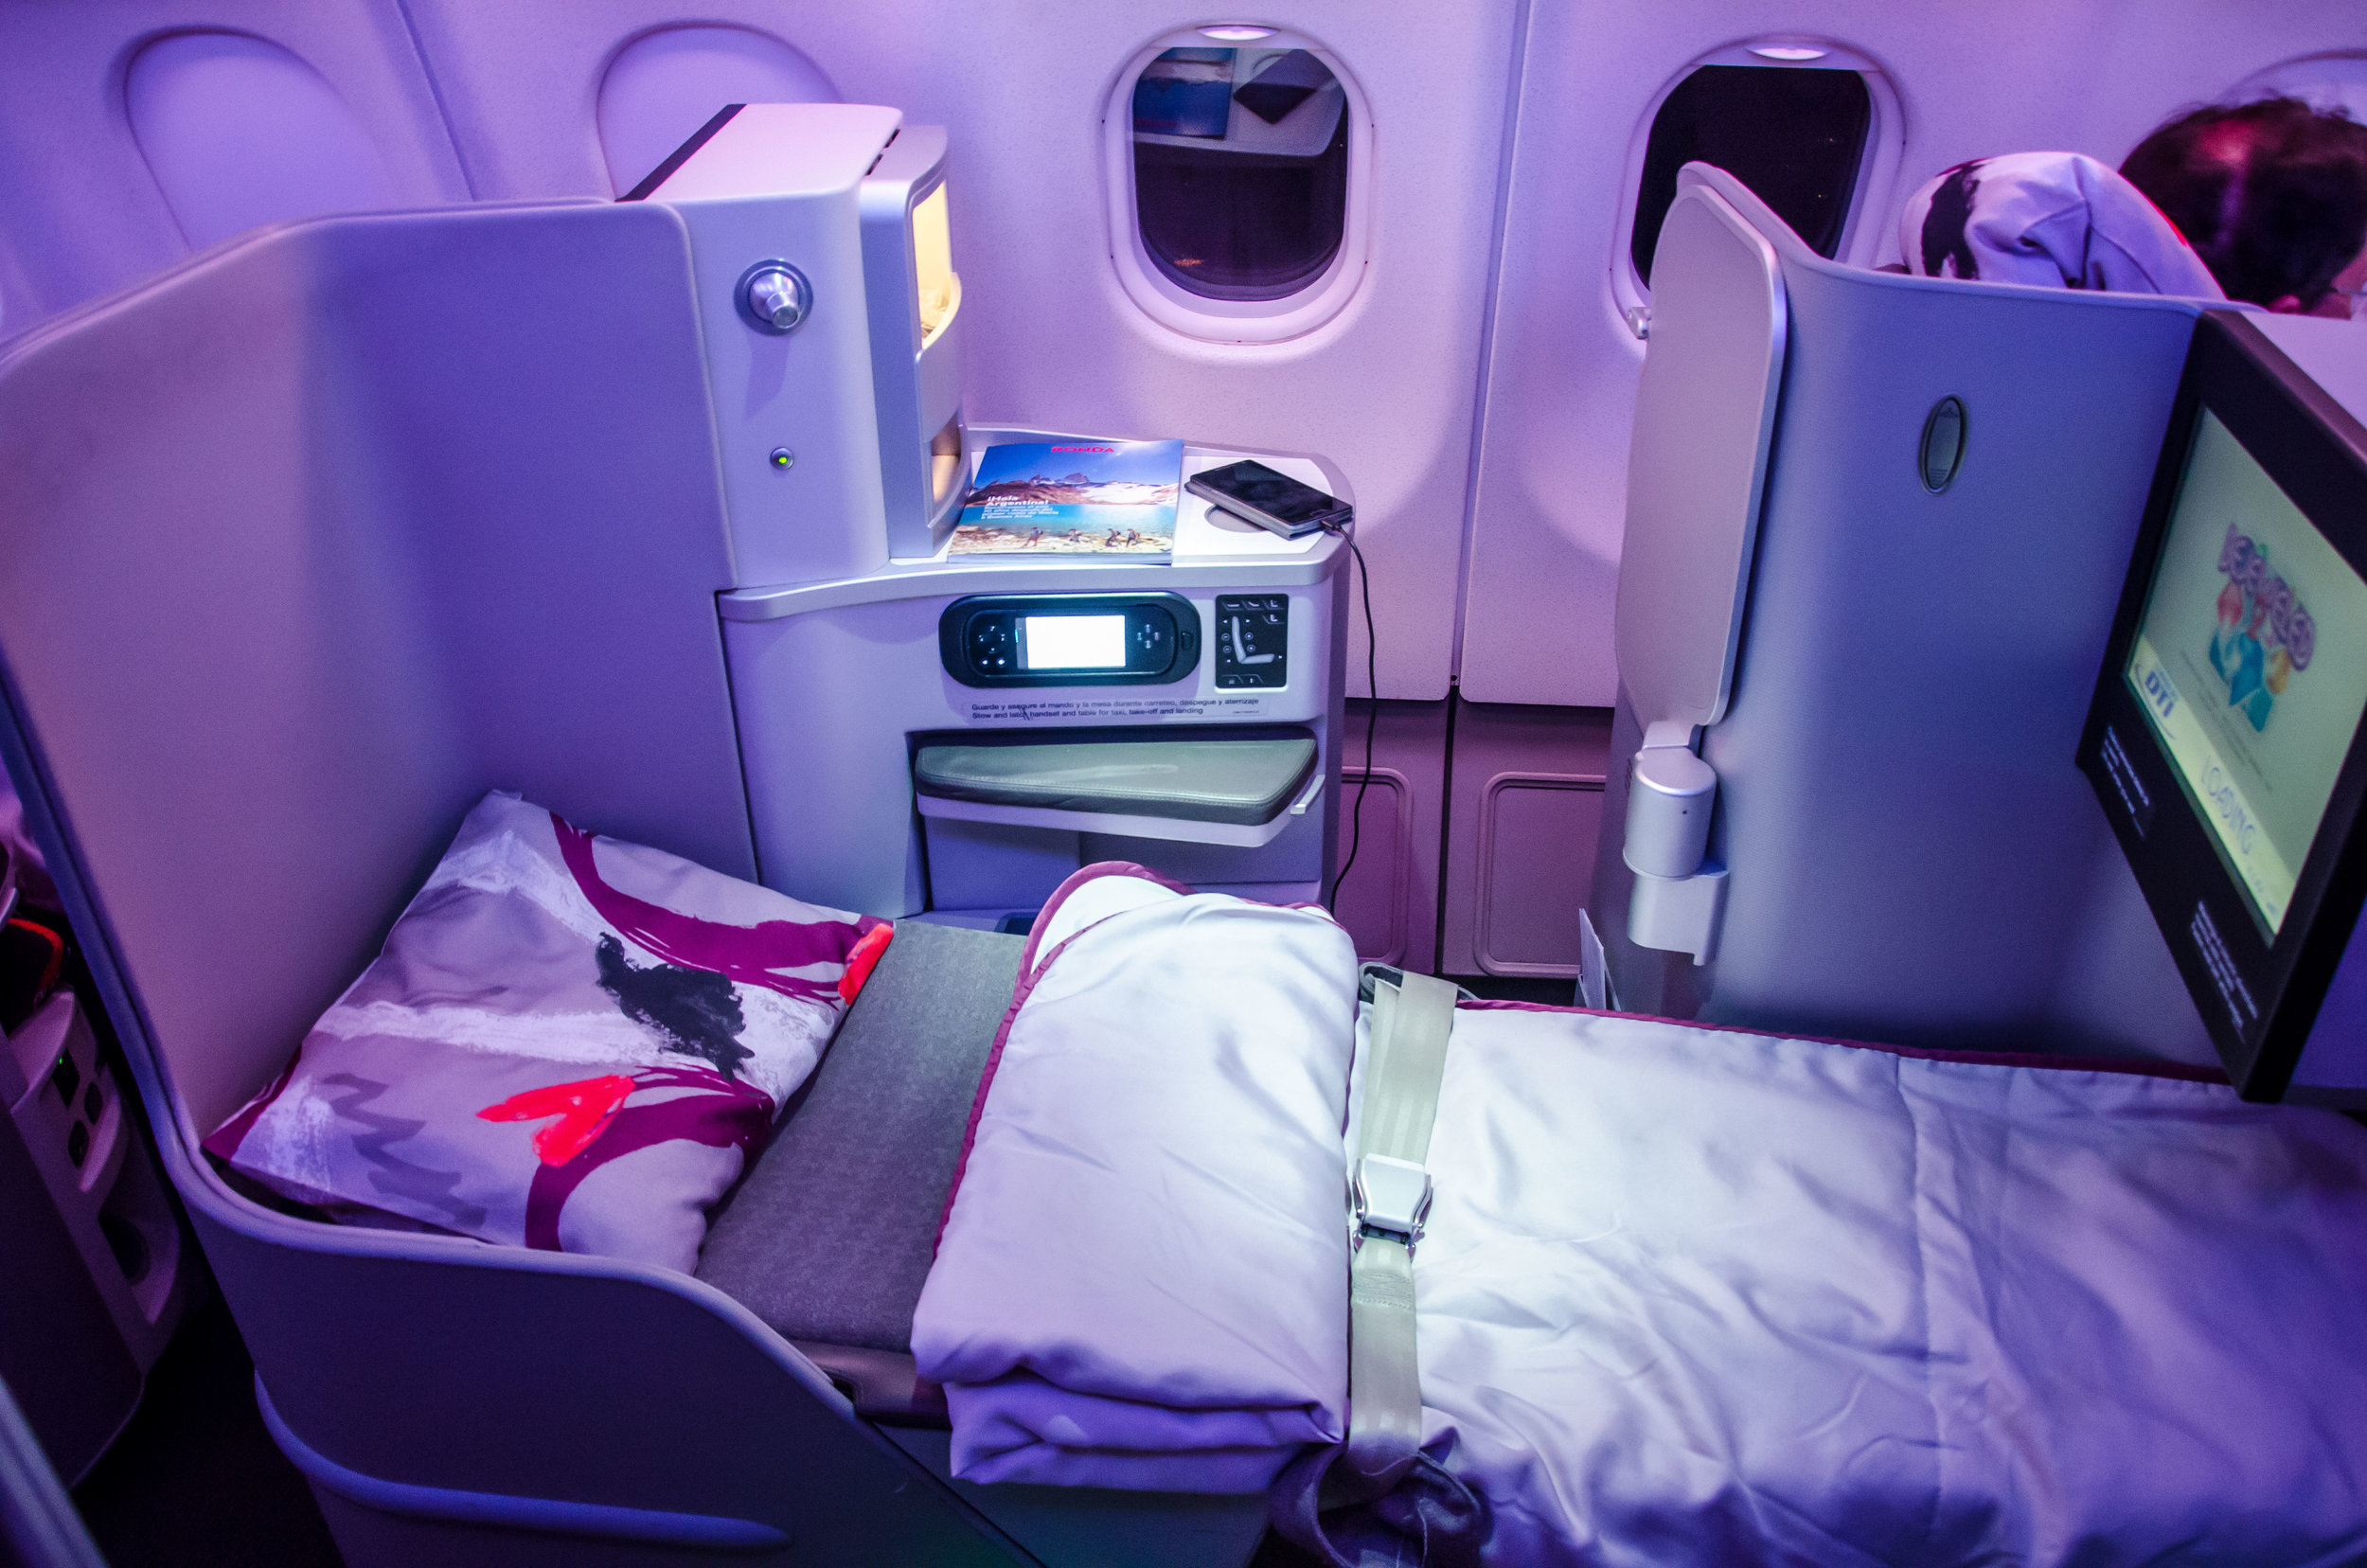 All seats can be turned into full flat beds.